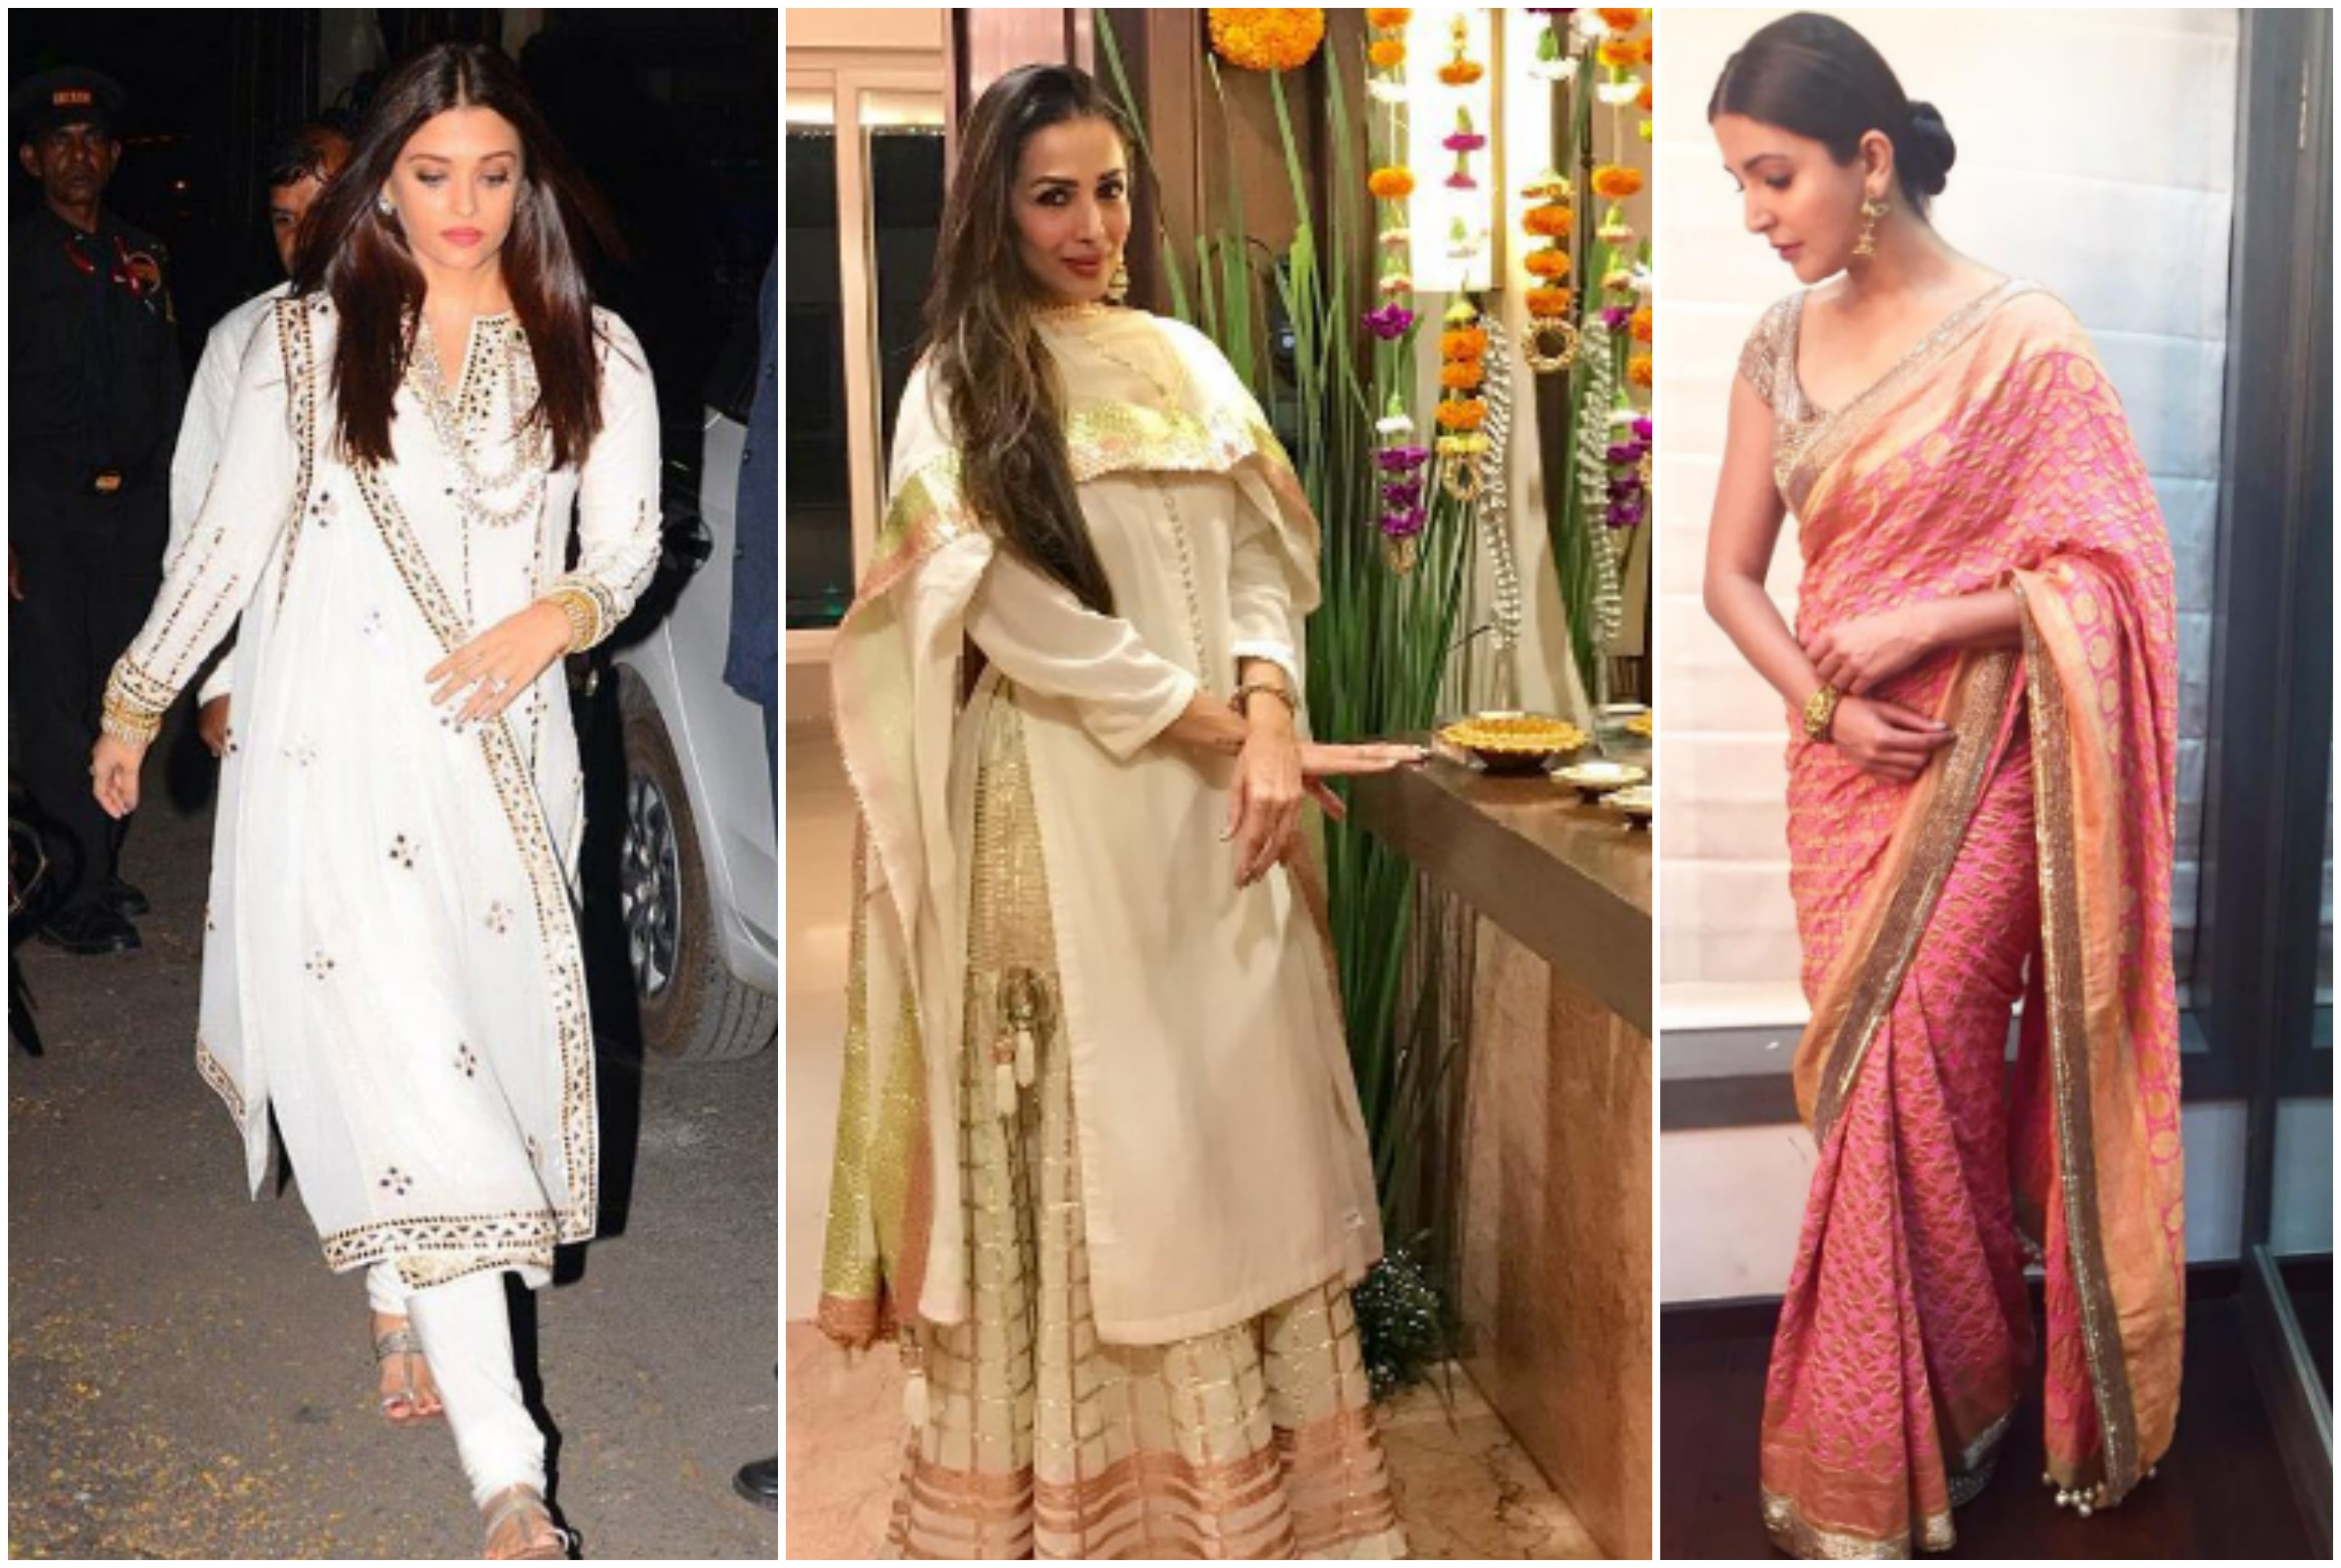 Diwali Outfits Inspiration from Bollywood Actresses